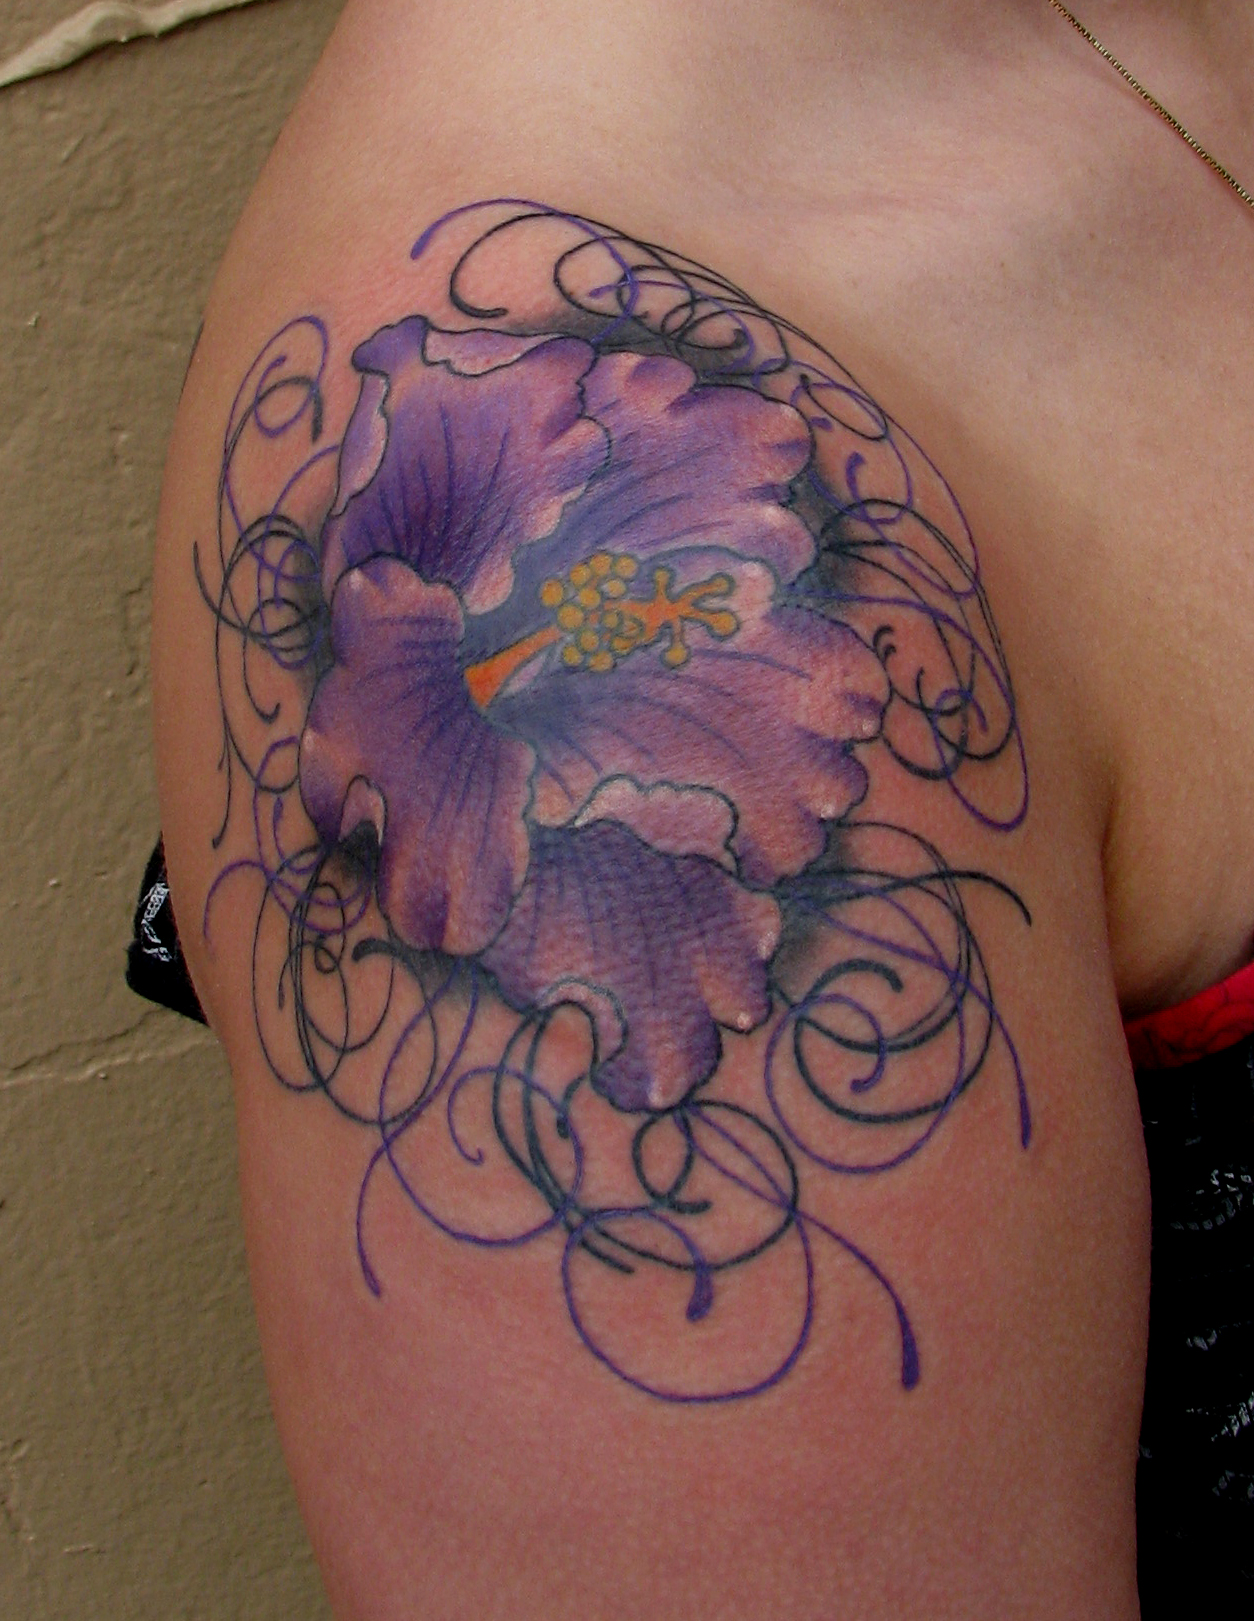 Hibiscus and filigree sara purr tattoo partially healed izmirmasajfo